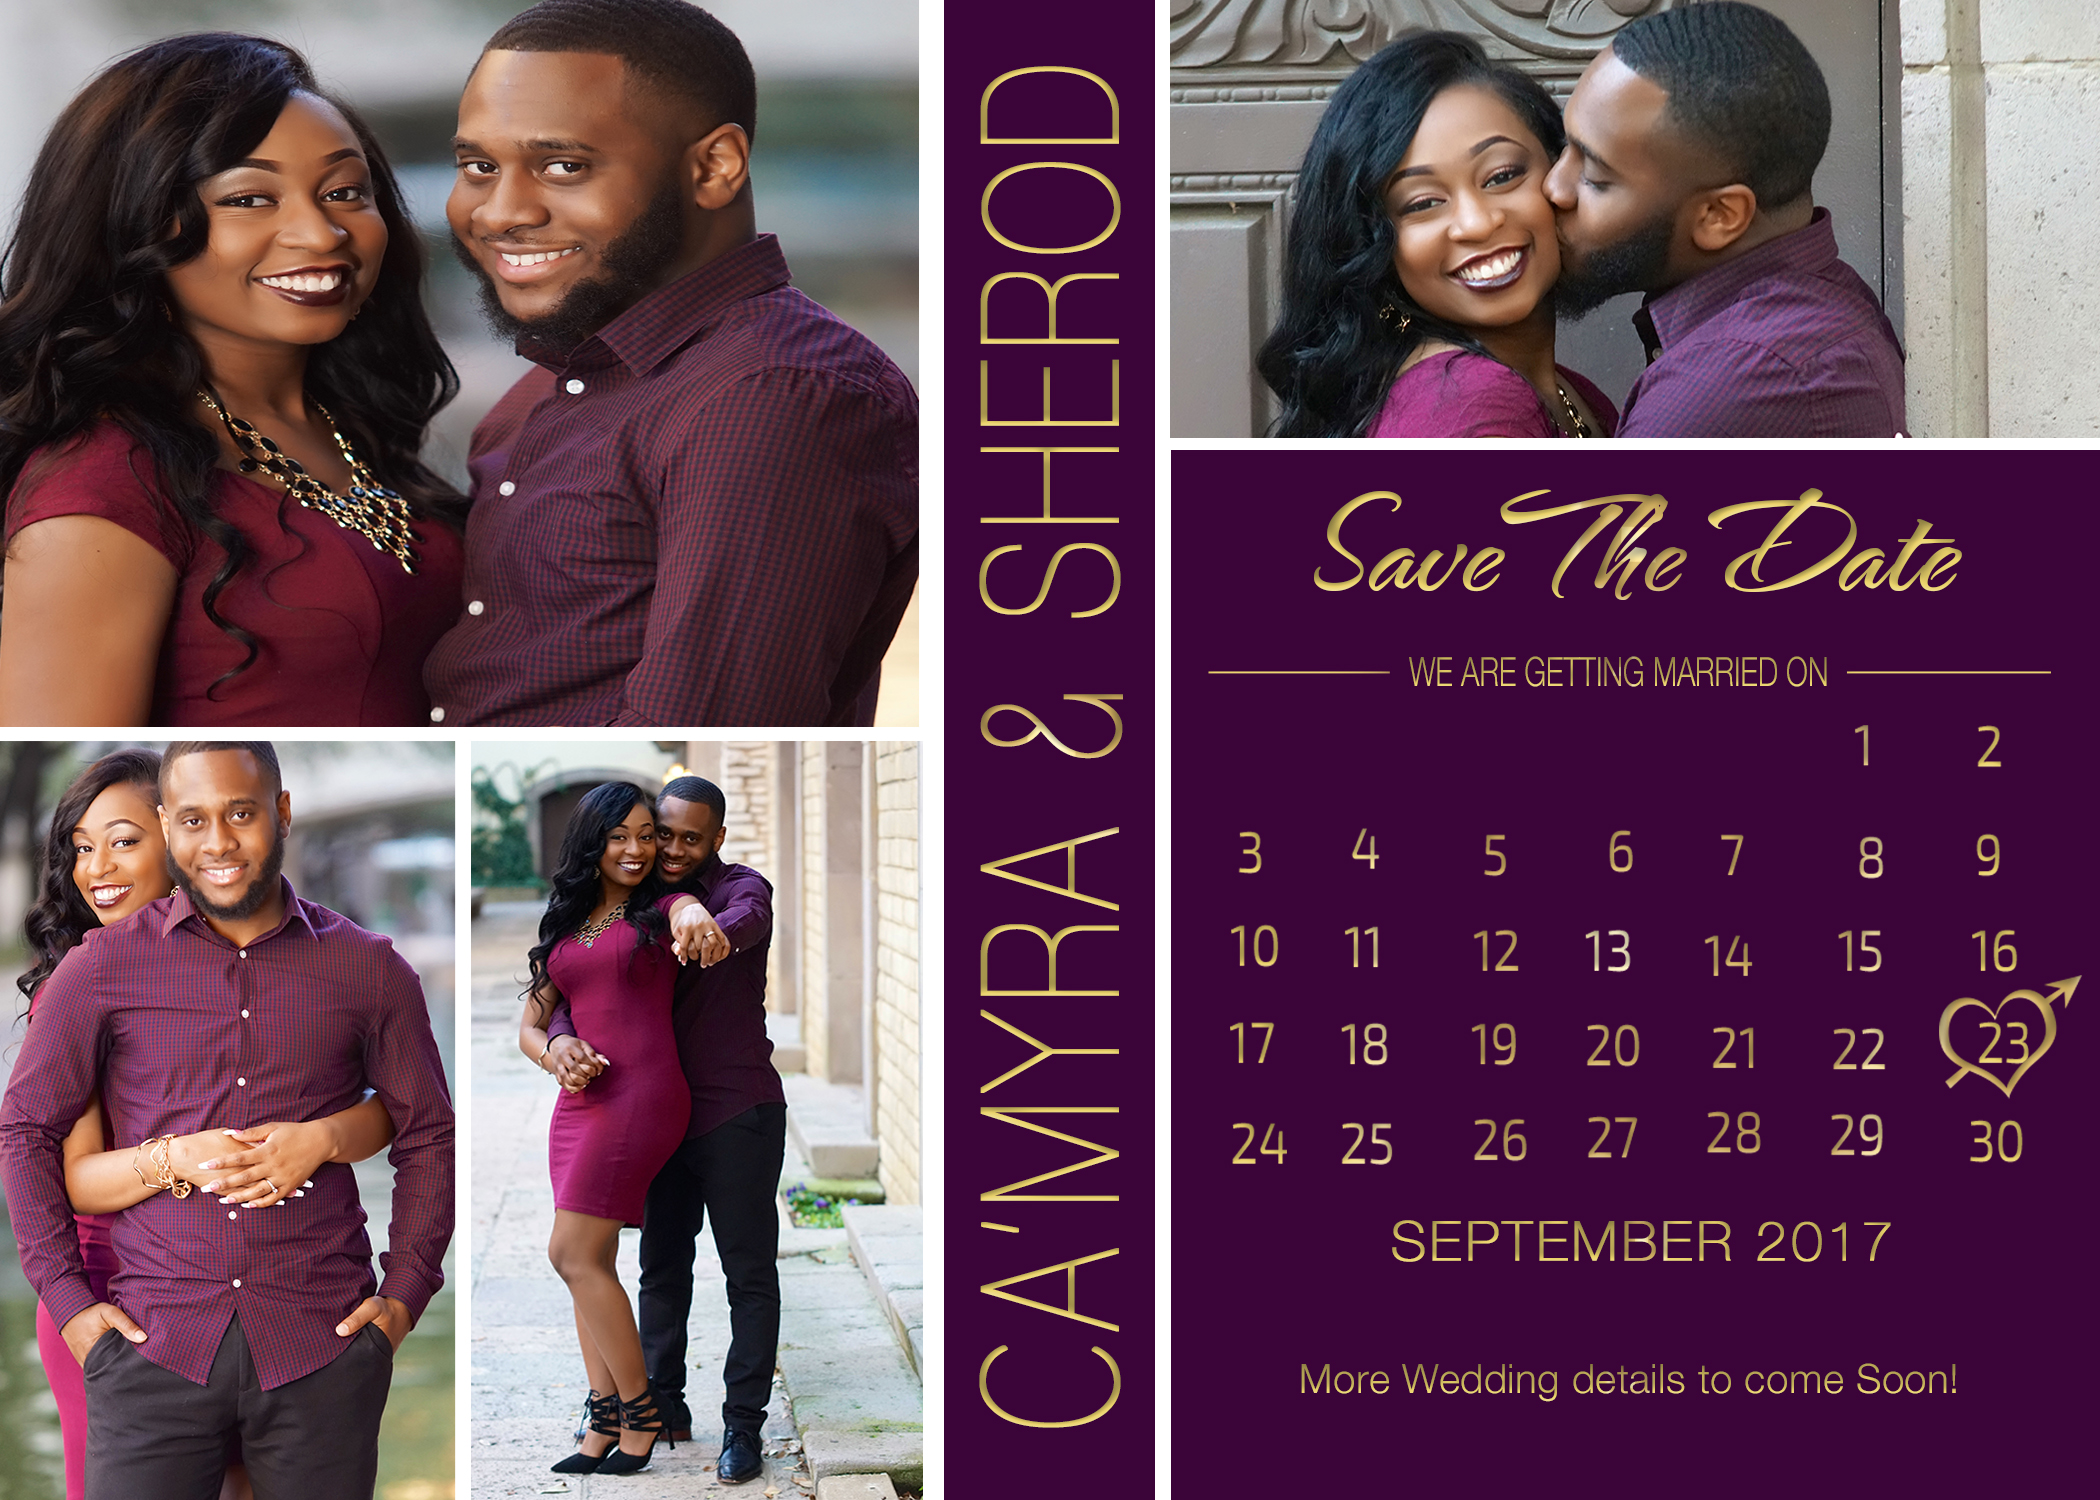 camyra ssave thedate1 front.jpg